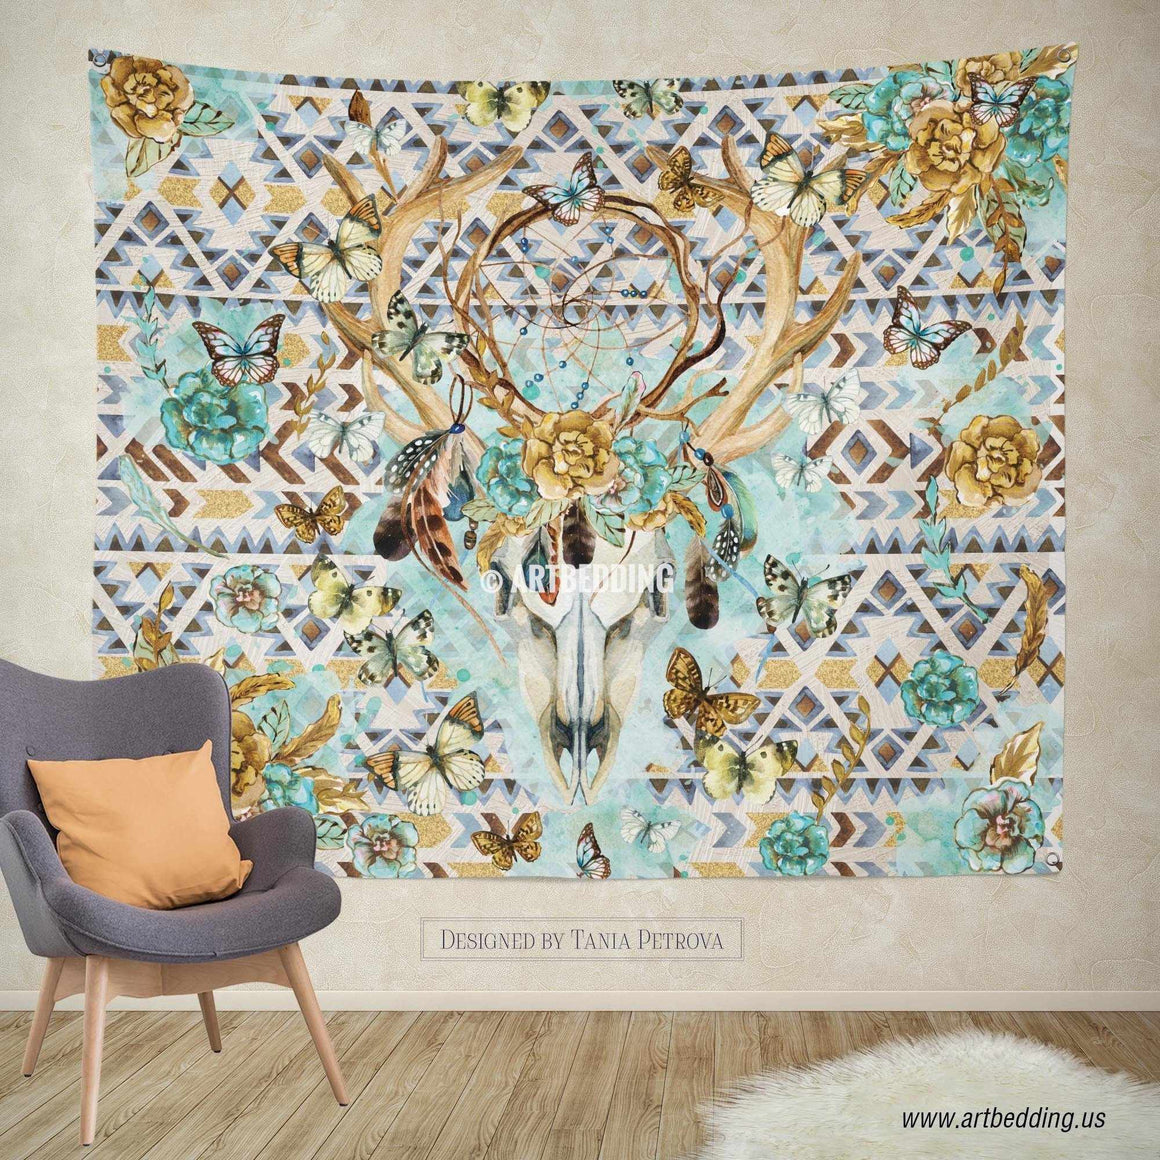 Boho Totem Dreamcatcher wall tapestry, Wartercolor Deer Skull wall hanging, Deer Head hand drawn wildflowers wall art print, Butterflies boho wall tapestries Tapestry